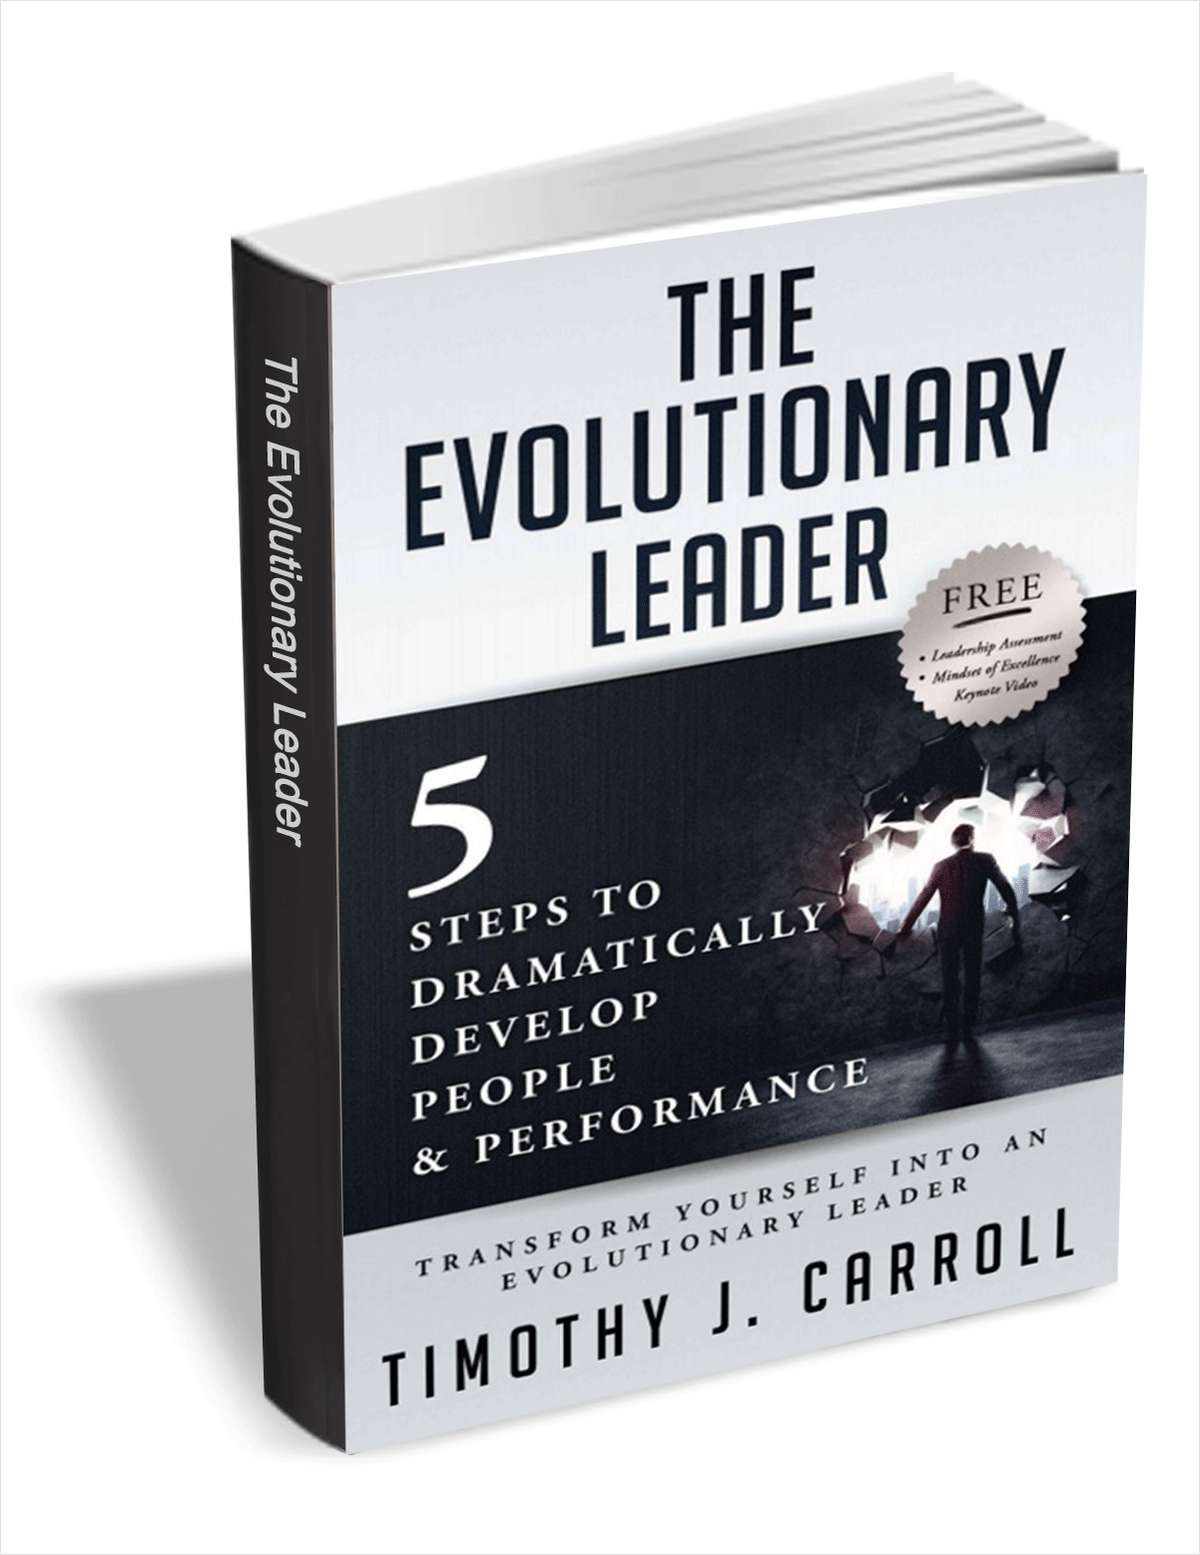 The Evolutionary Leader ($9.95 Value) FREE For a Limited Time Screenshot